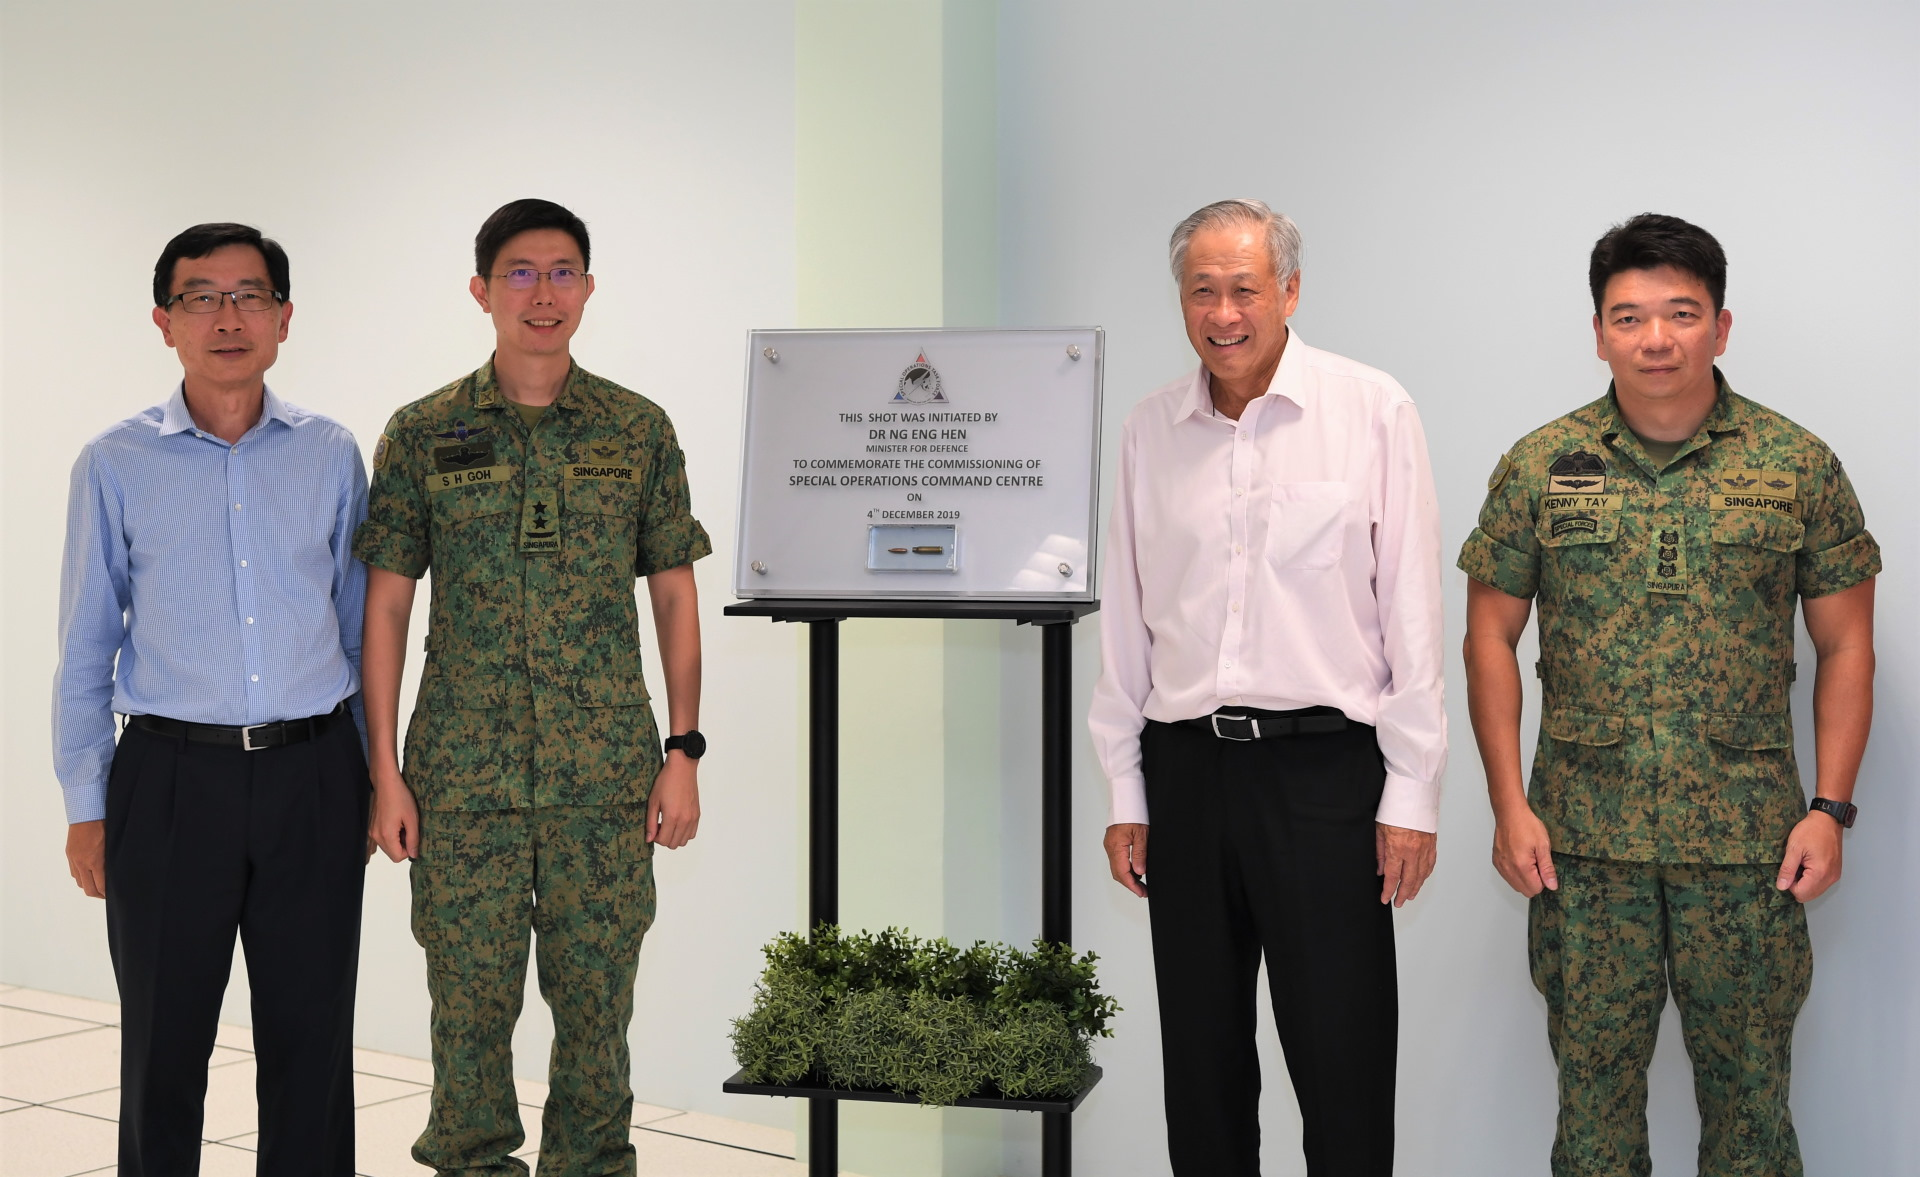 Dr Ng (second from right) commissions the Special Operations Task Force's new Special Operations Command Centre (SOCC) with Chief Executive.